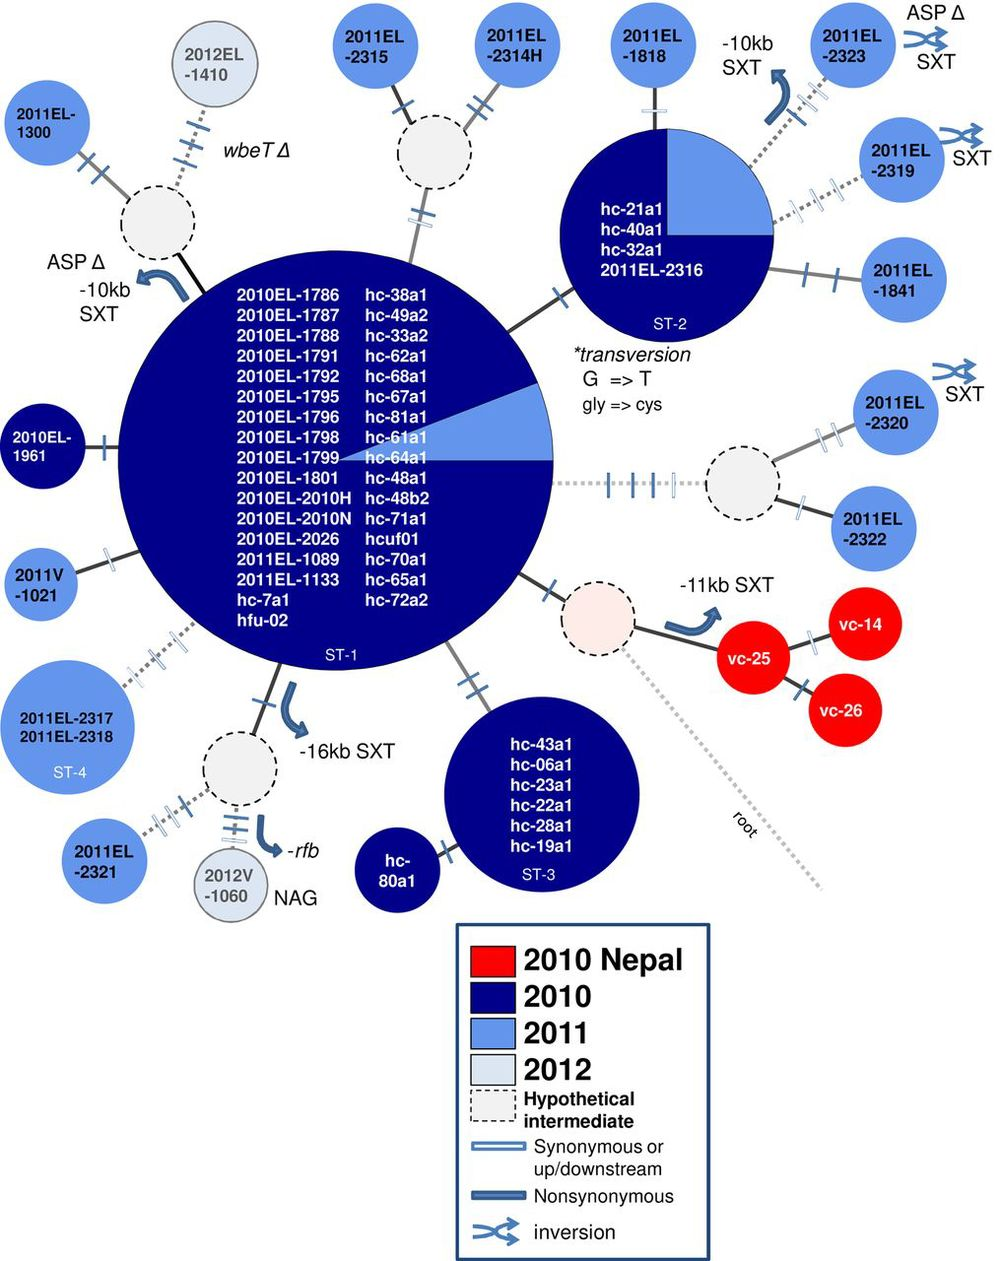 The radiation of numerous lineages of V. cholerae O1 strains from a single sequence type that predominated in the early part of the Haiti cholera epidemic (from Katz et al., 2013)